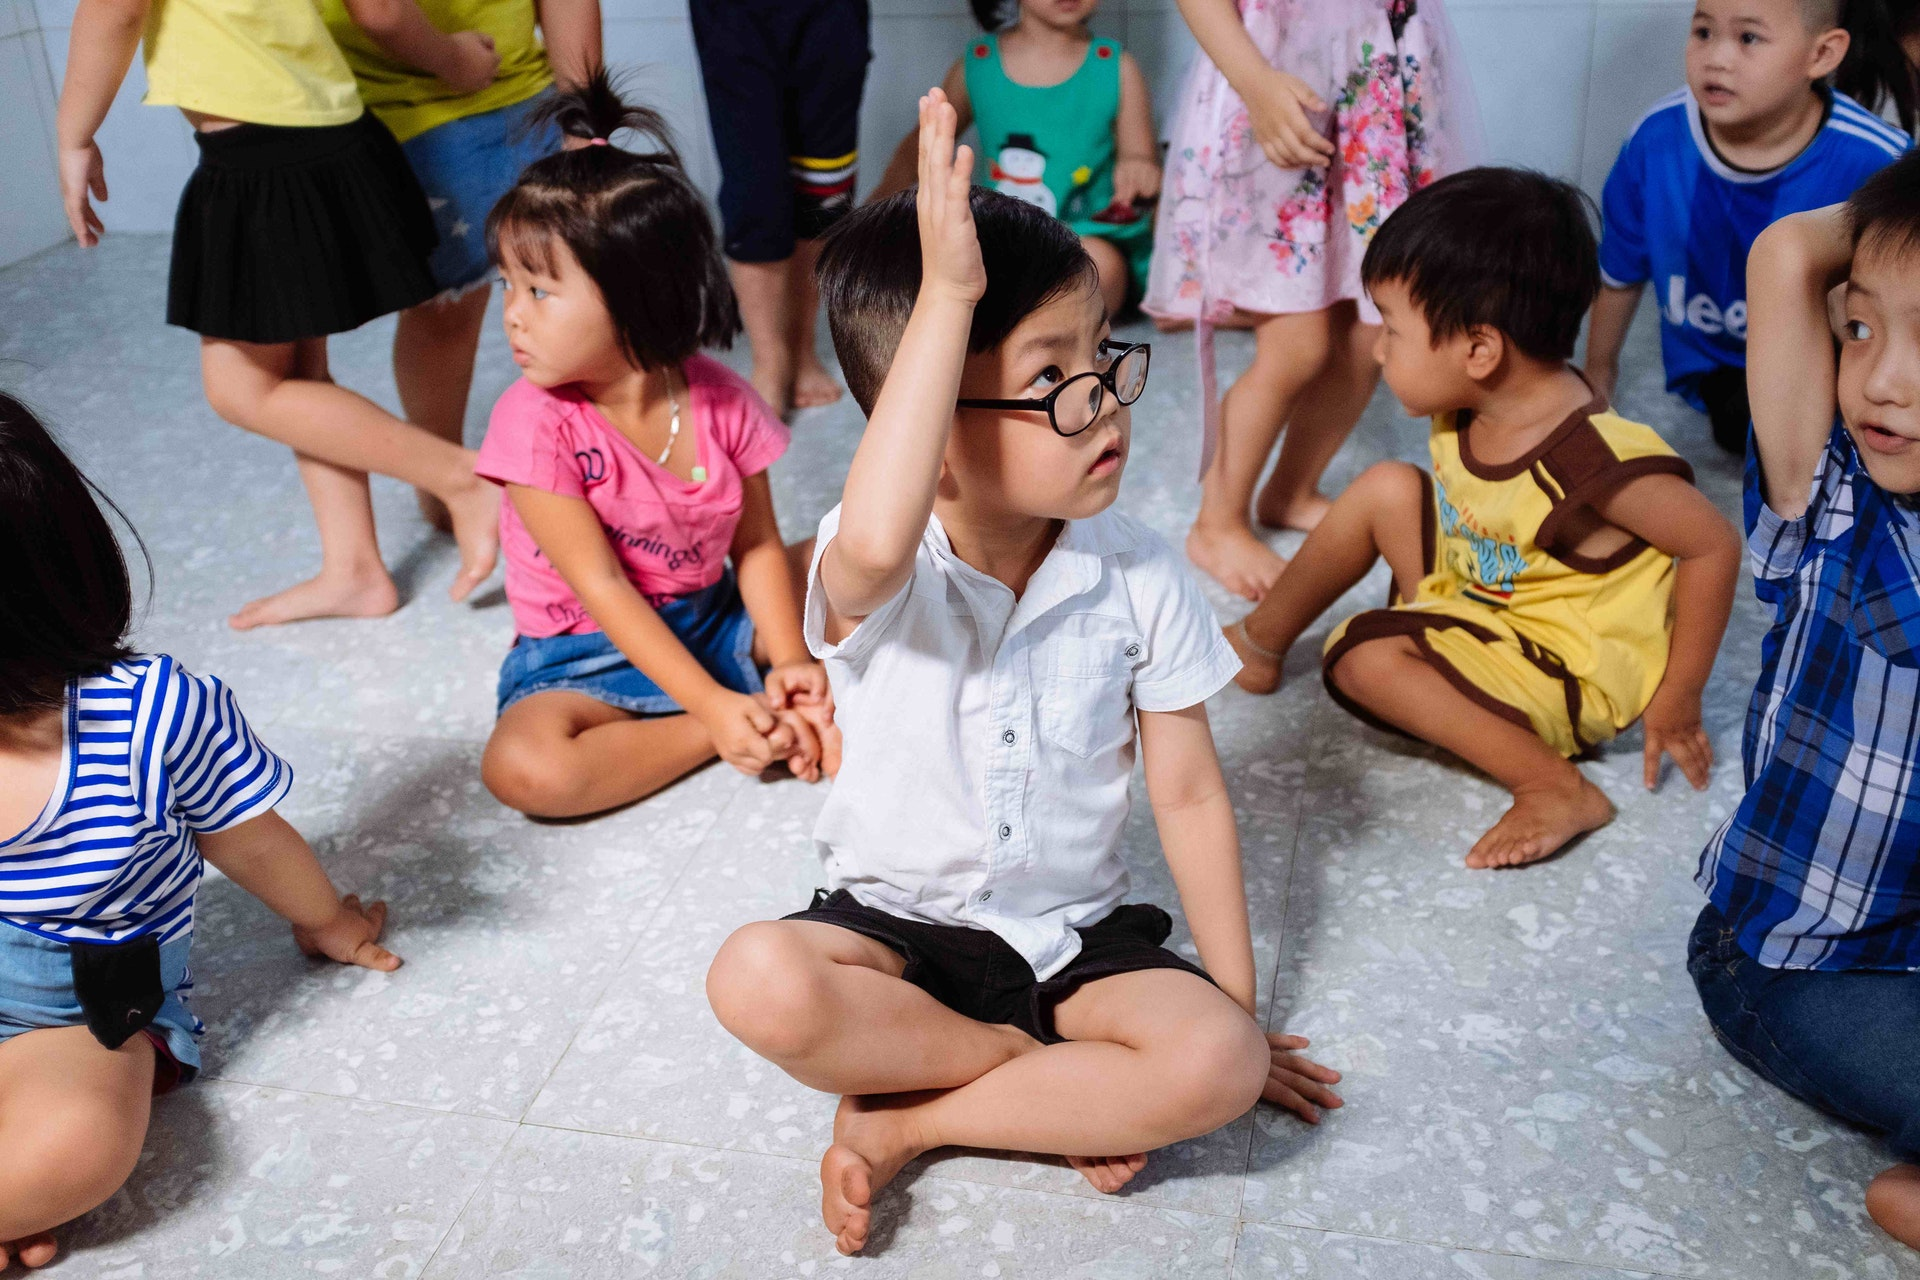 Cataract patient Tam, 5 years, sits with his school friends. He can see again after pediatric eye surgery